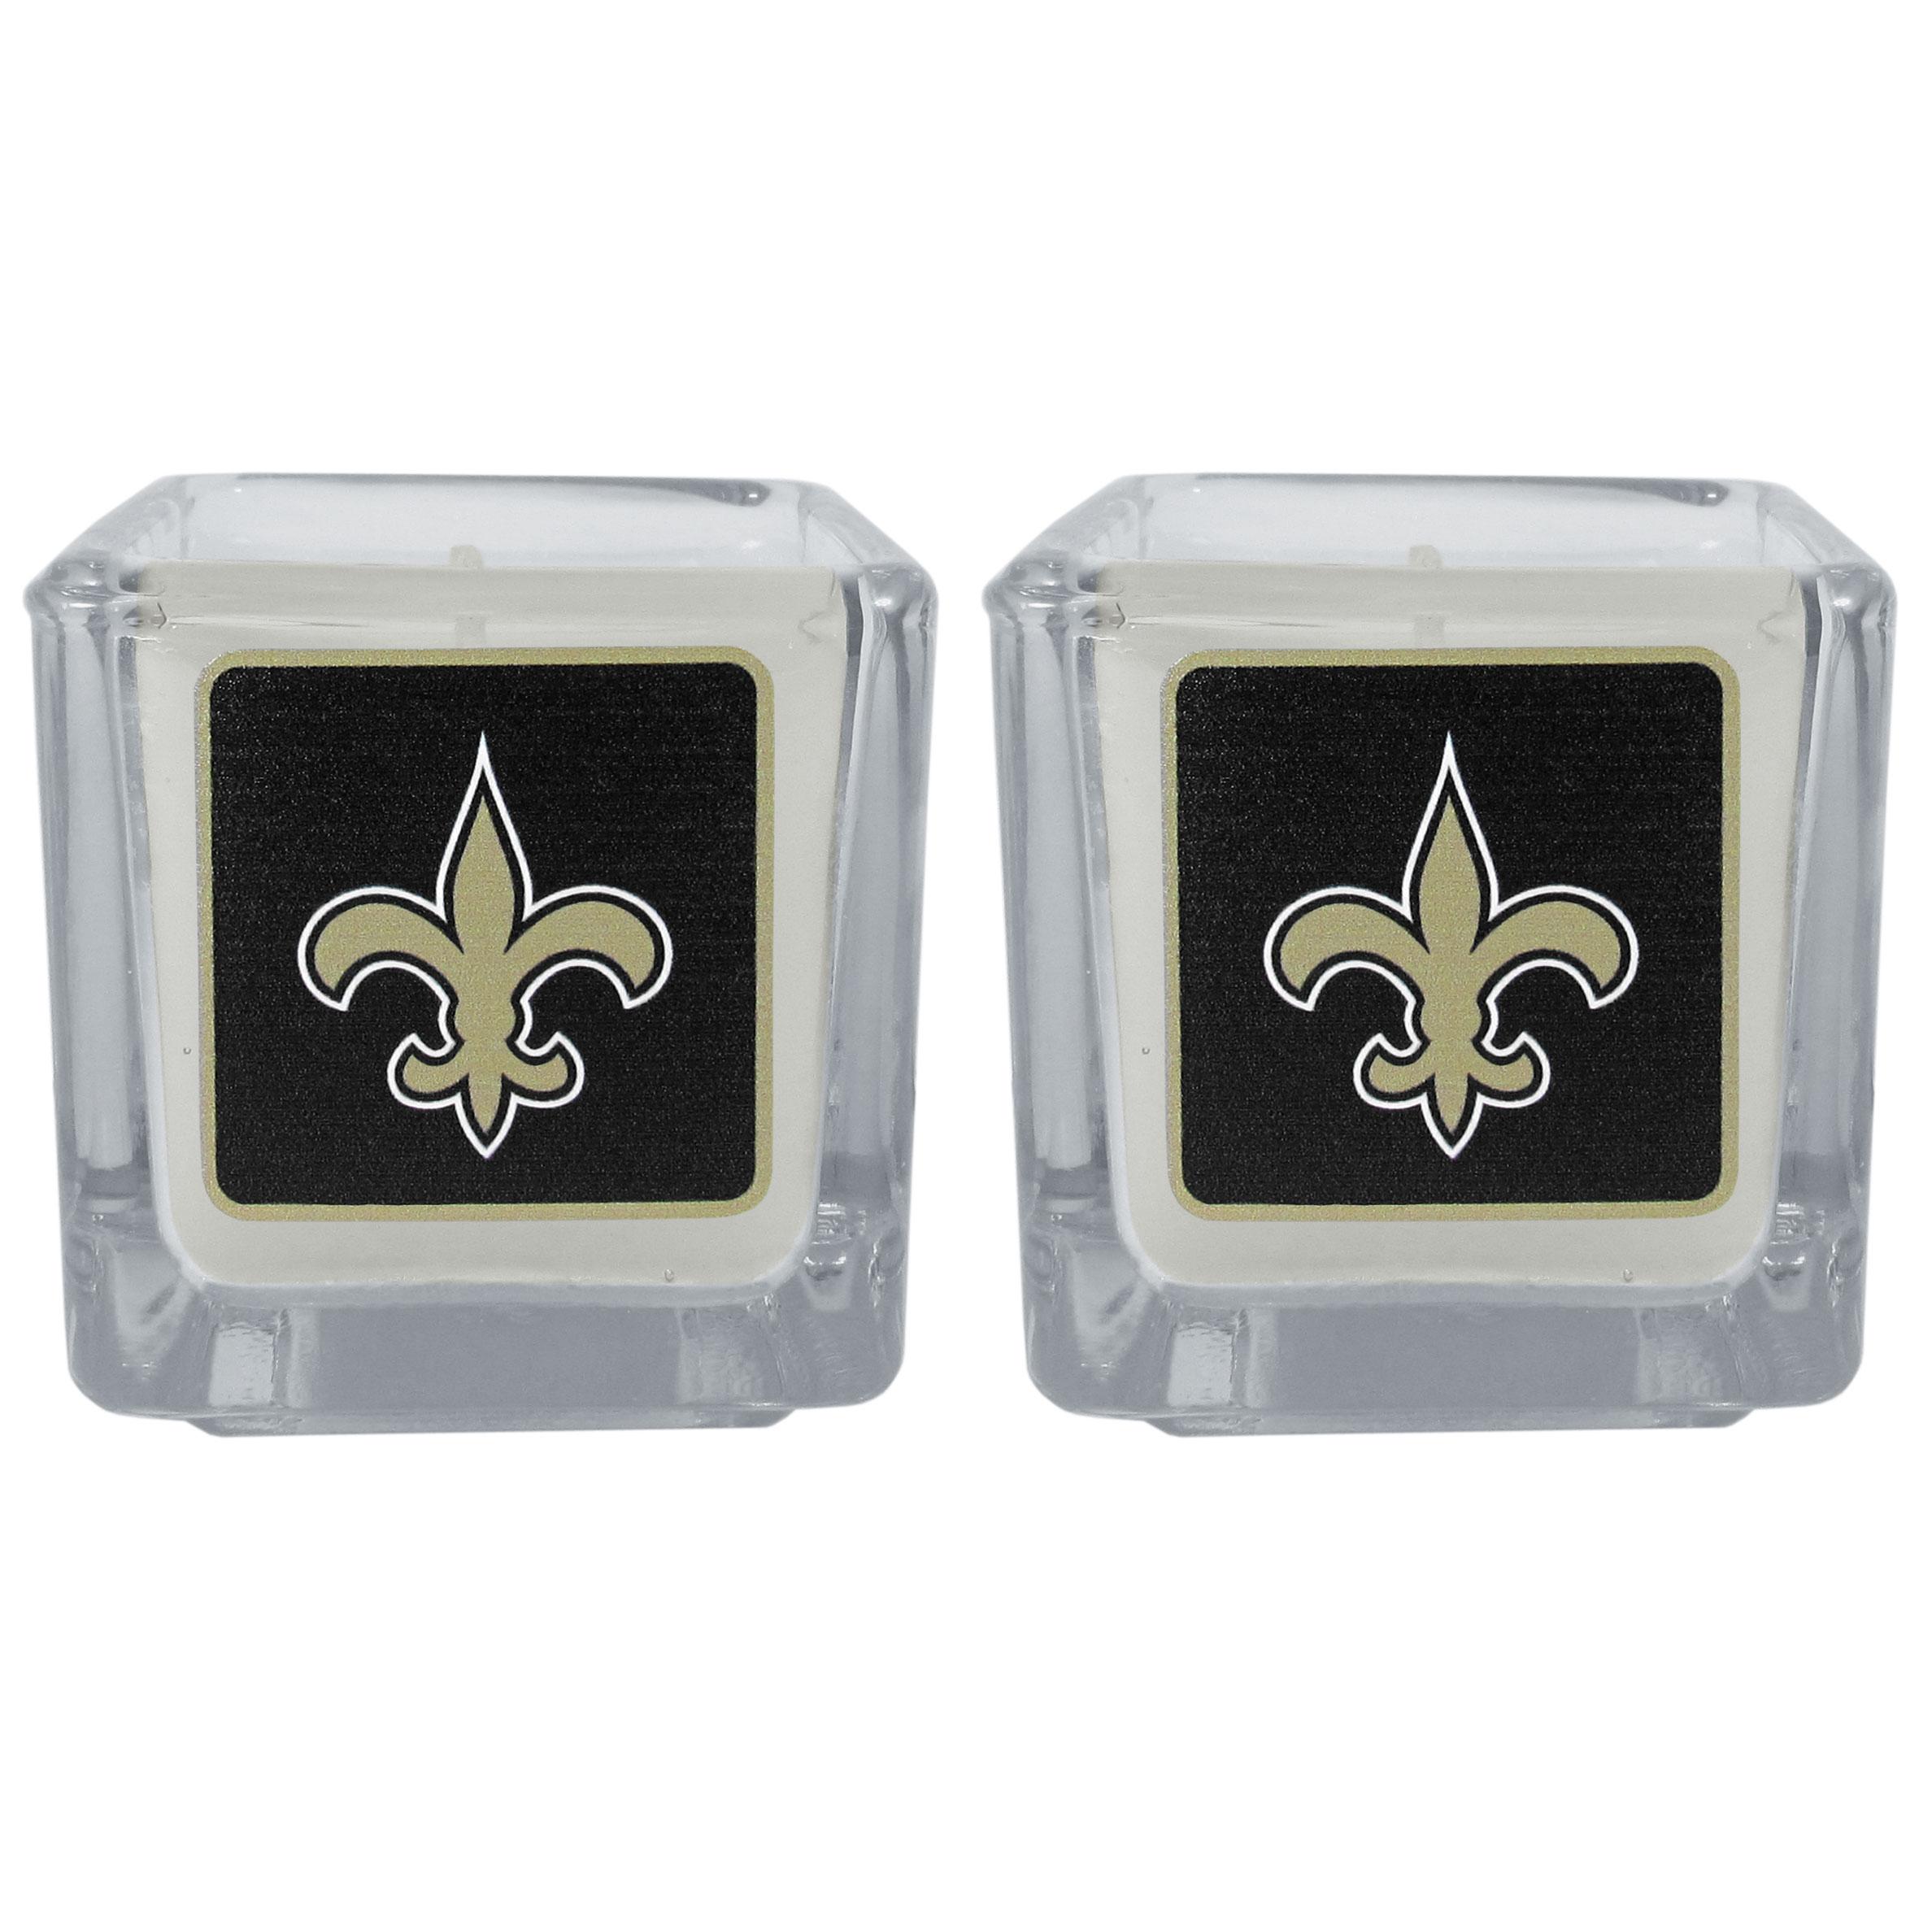 New Orleans Saints Graphics Candle Set - Our candle set features 2 lightly vanilla scented candles with the New Orleans Saints logo expertly printed on front. The candles are 2 inches tall in the votive style.